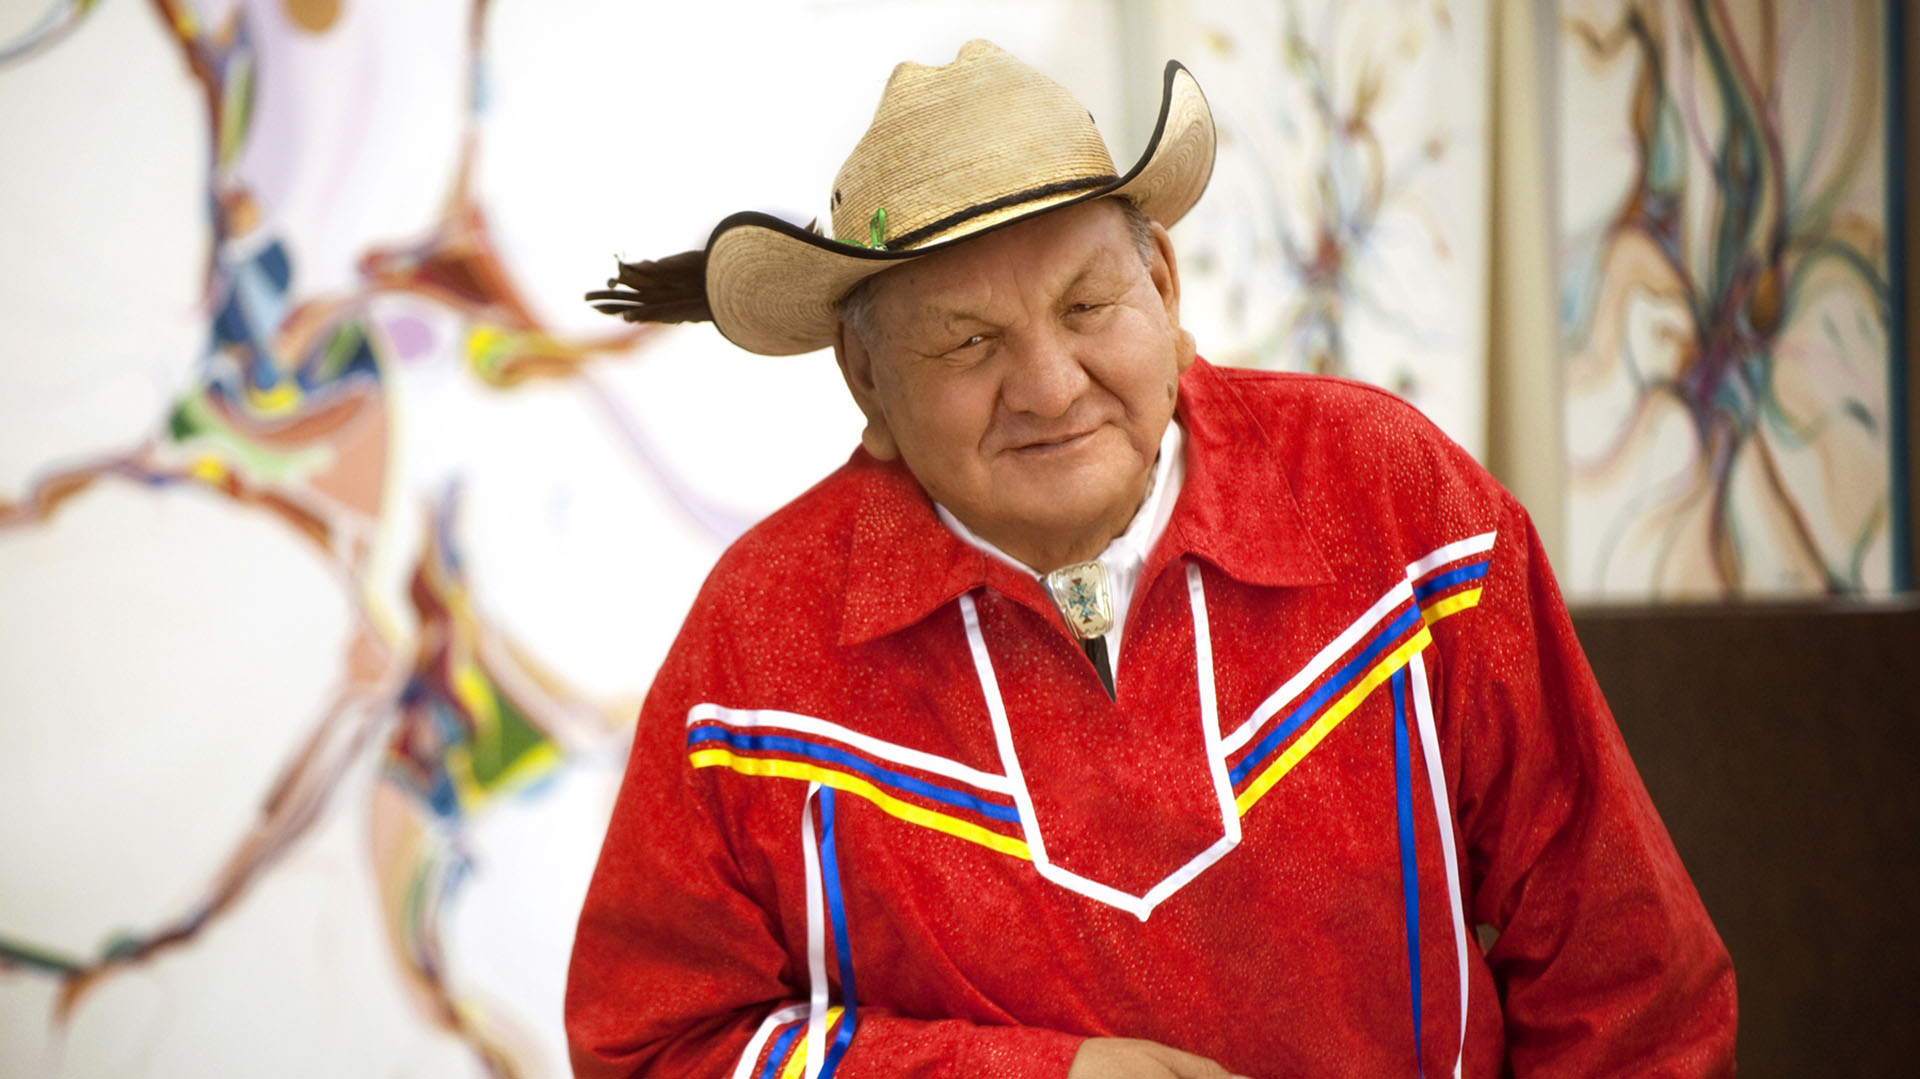 Alberta Order of Excellence member Alex Janvier